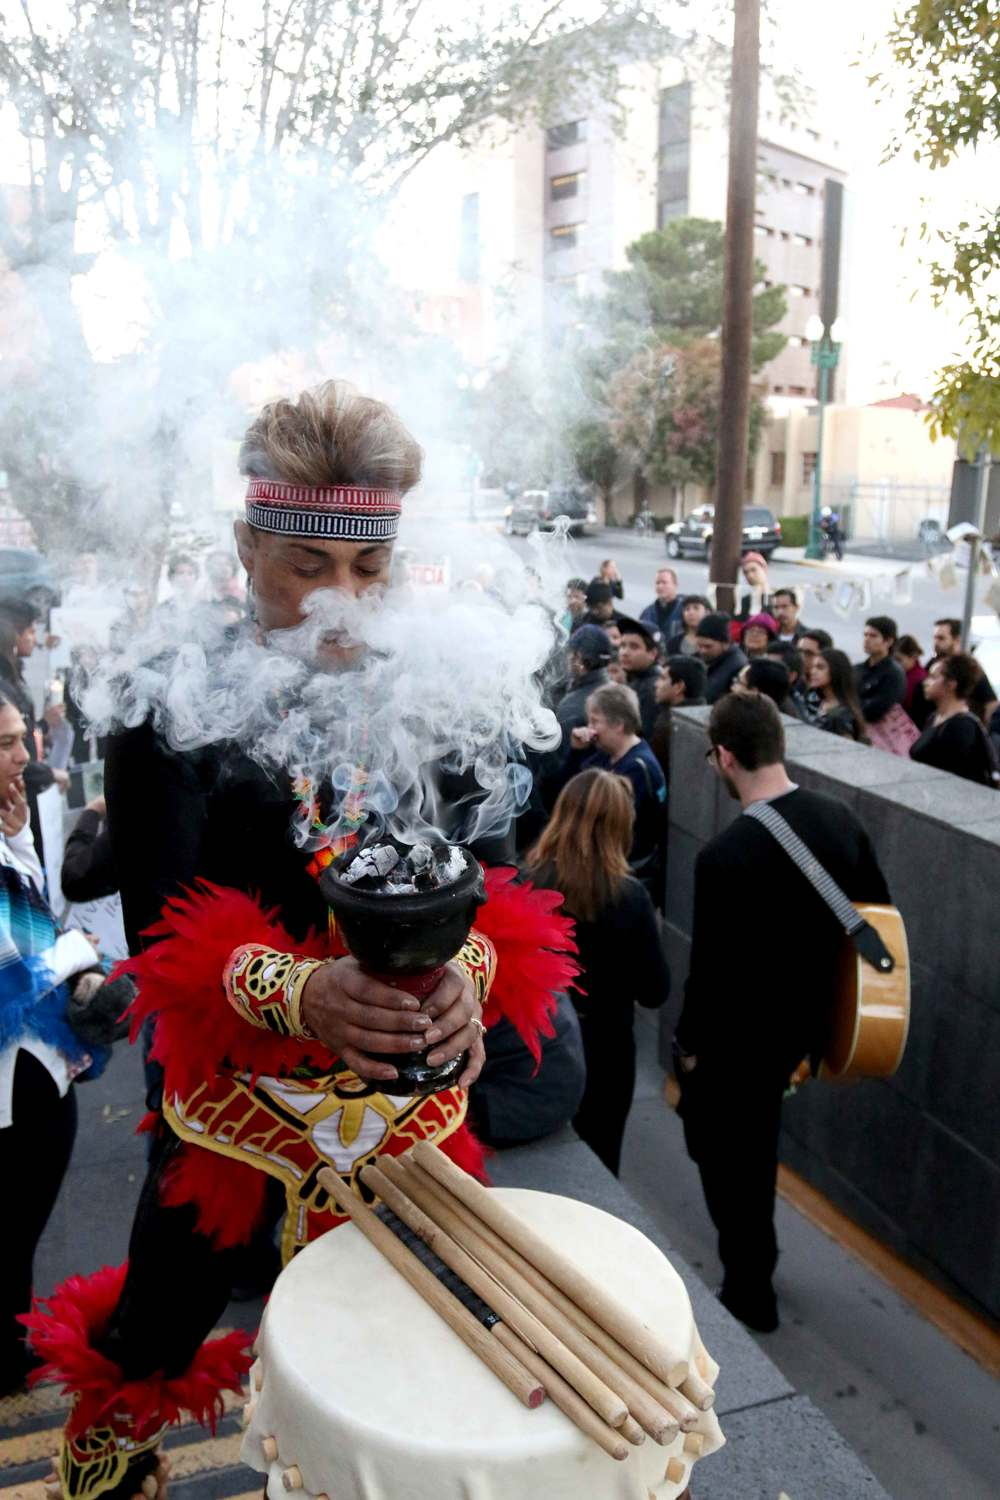 An El Pasoan performs a native ritual in front of the Consulate General of Mexico during a vigil for the 43 missing Ayotzinapa college students from Mexico on Nov. 21, 2014.